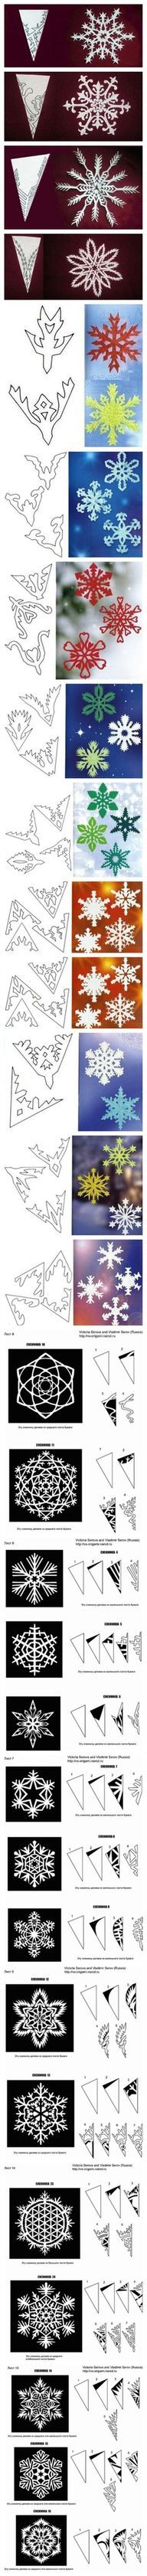 How to cut snowflake - http://craftideas.bitchinrants.com/how-to-cut-snowflake/